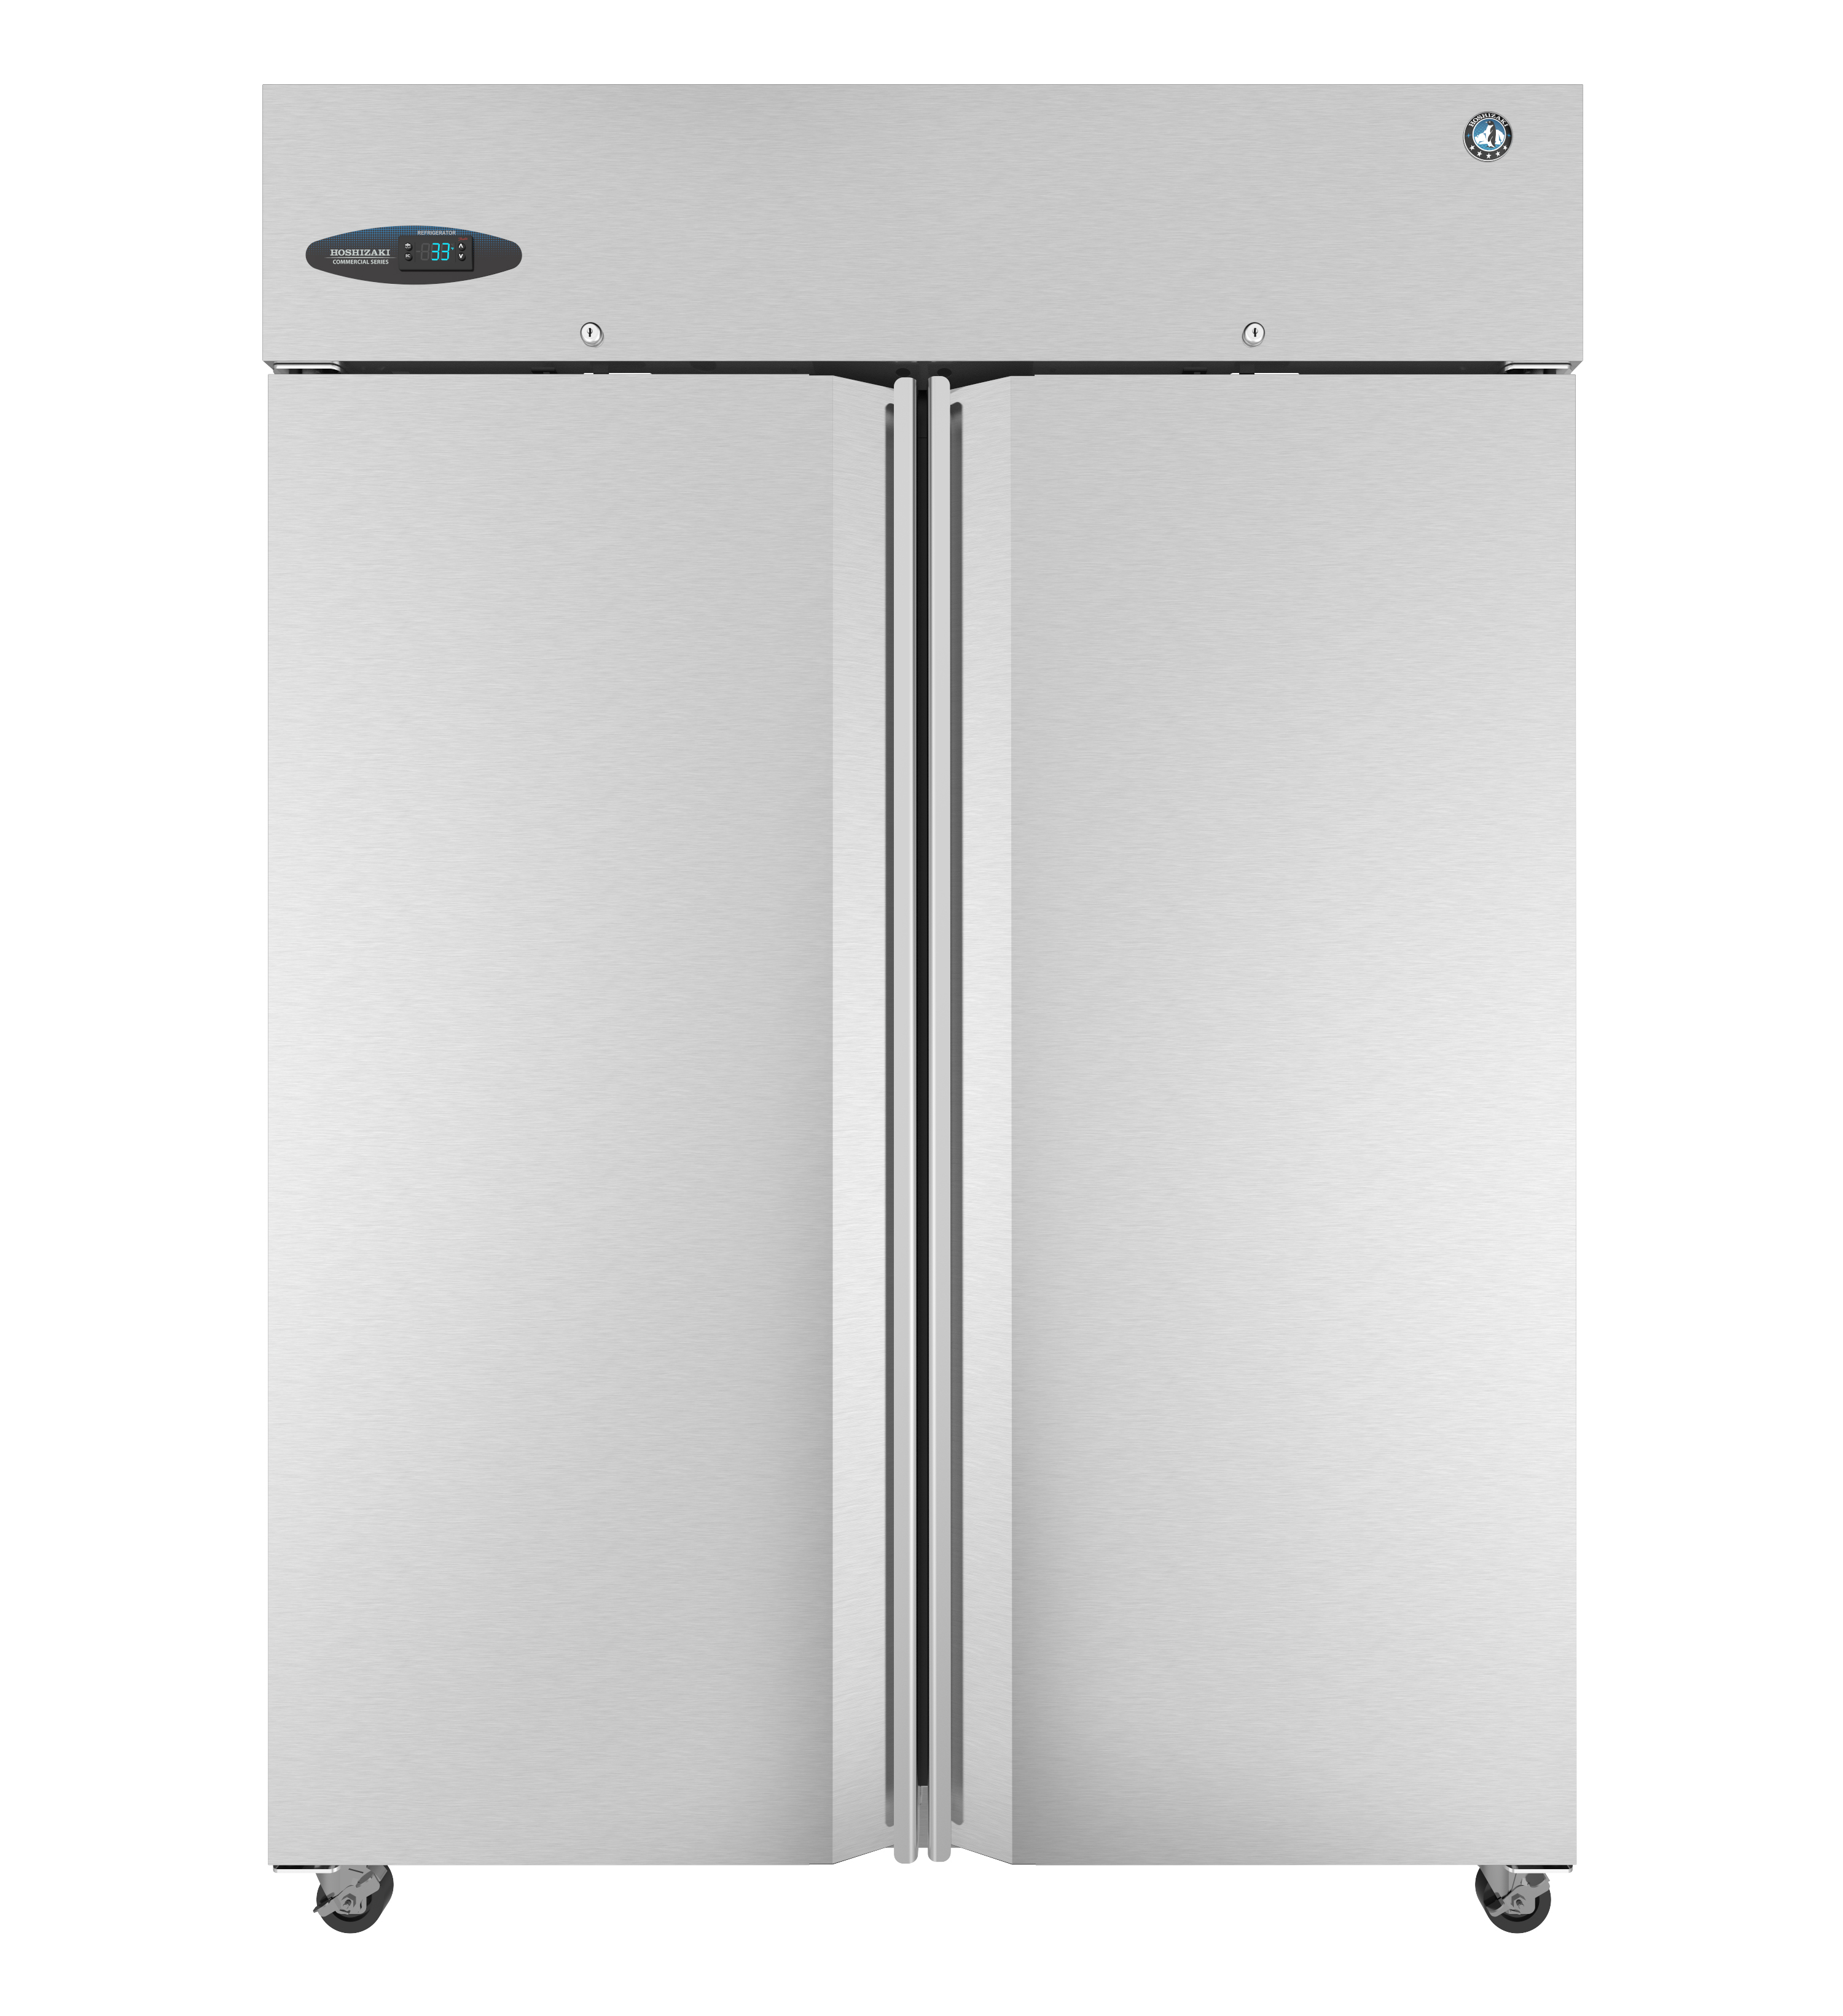 Cf2s Fs Commercial Series Upright Freezer Two Section With Lockable Full Stainless Doors